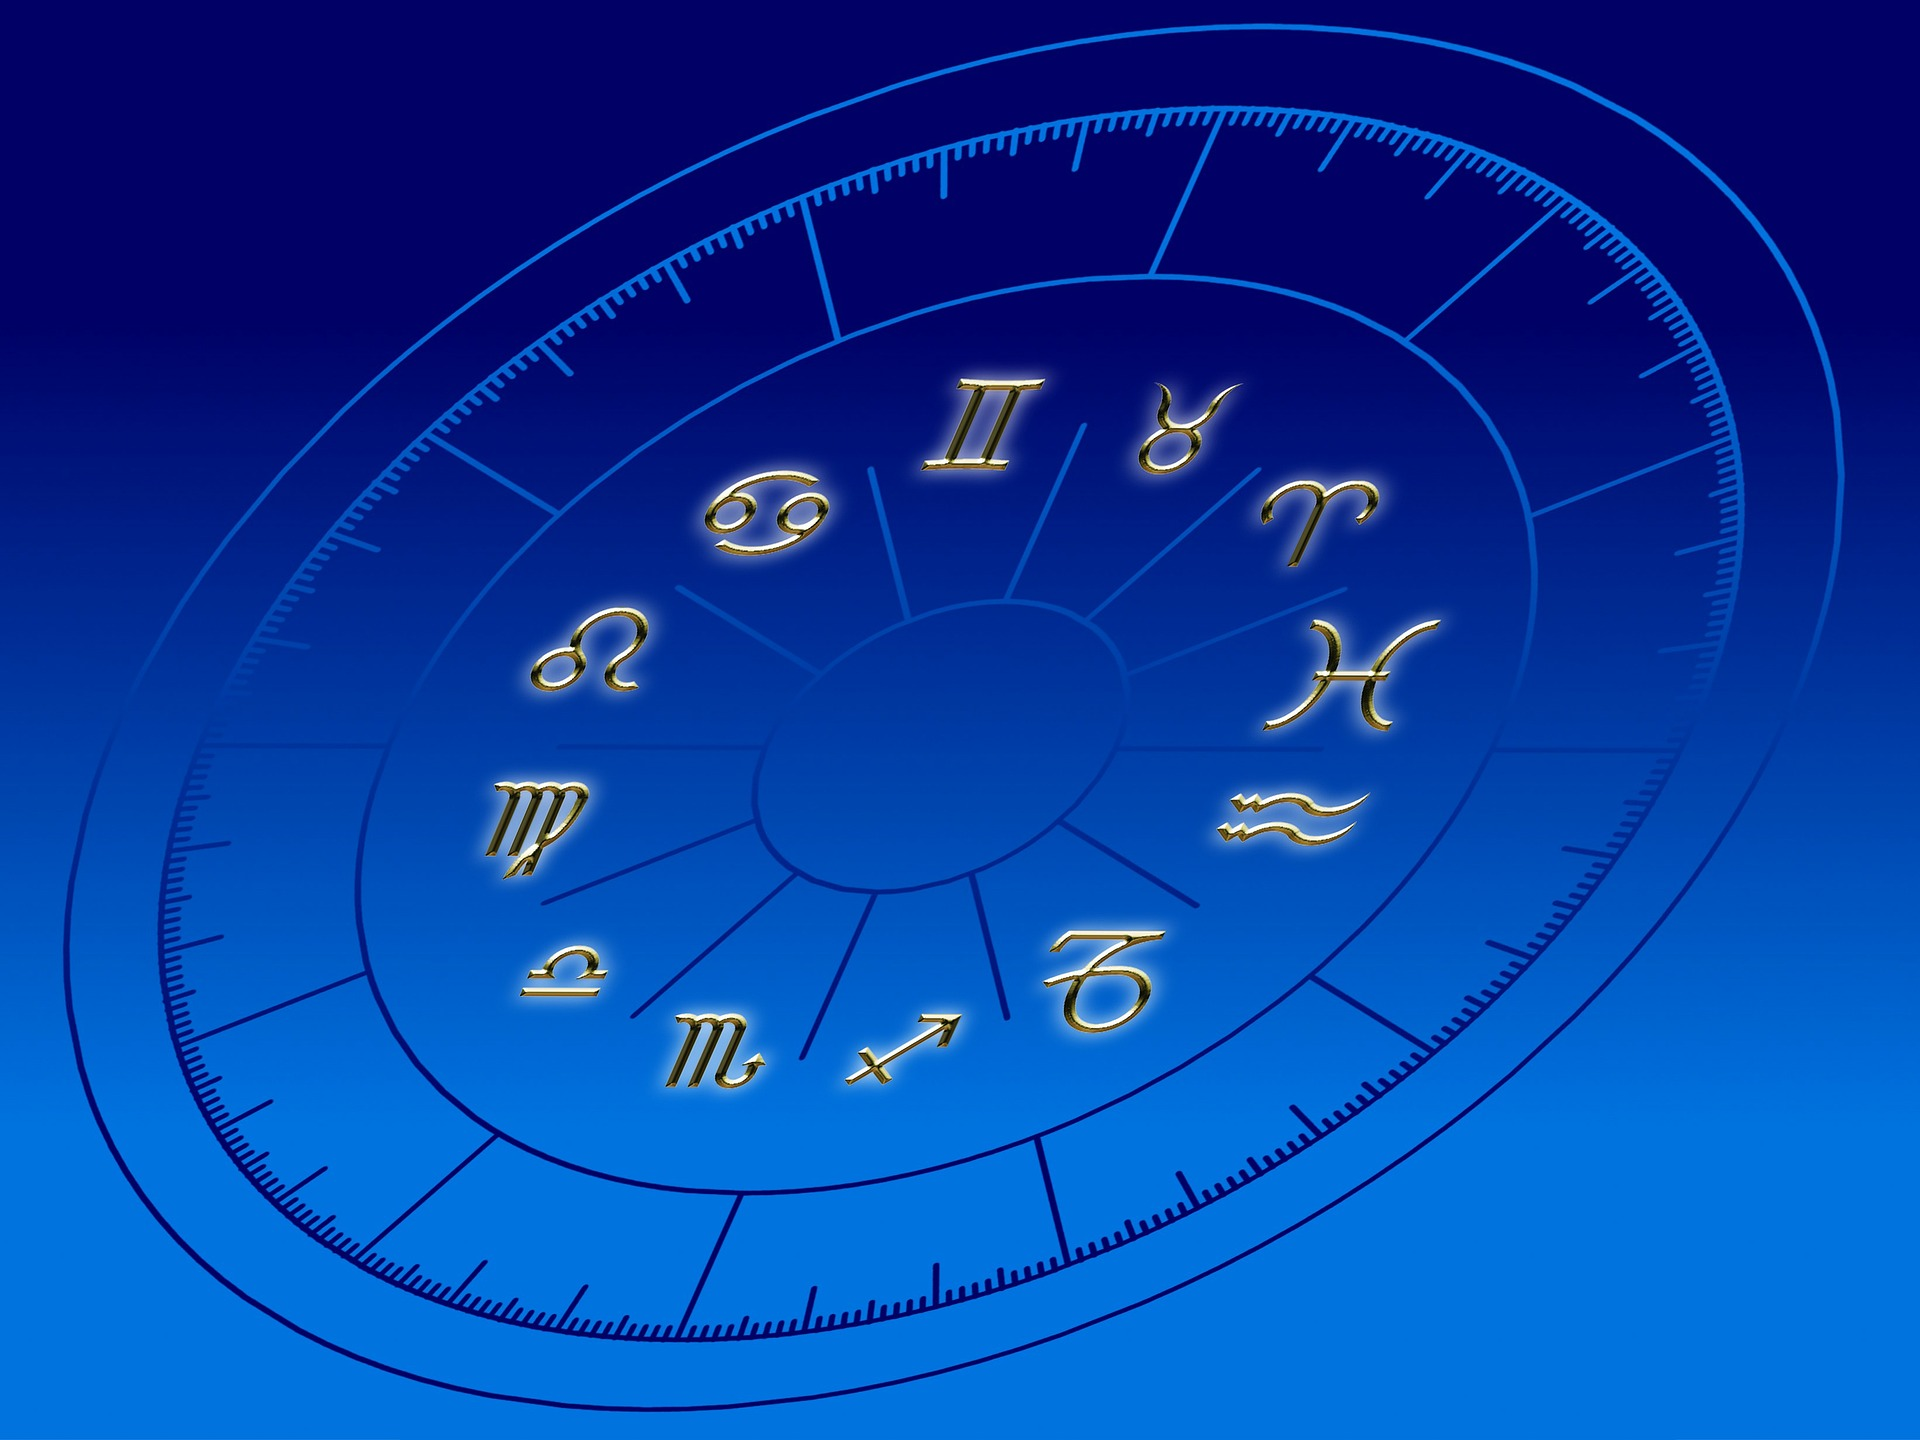 Divisional Horoscopes The Vargas Or The Harmonic Charts Astrozing